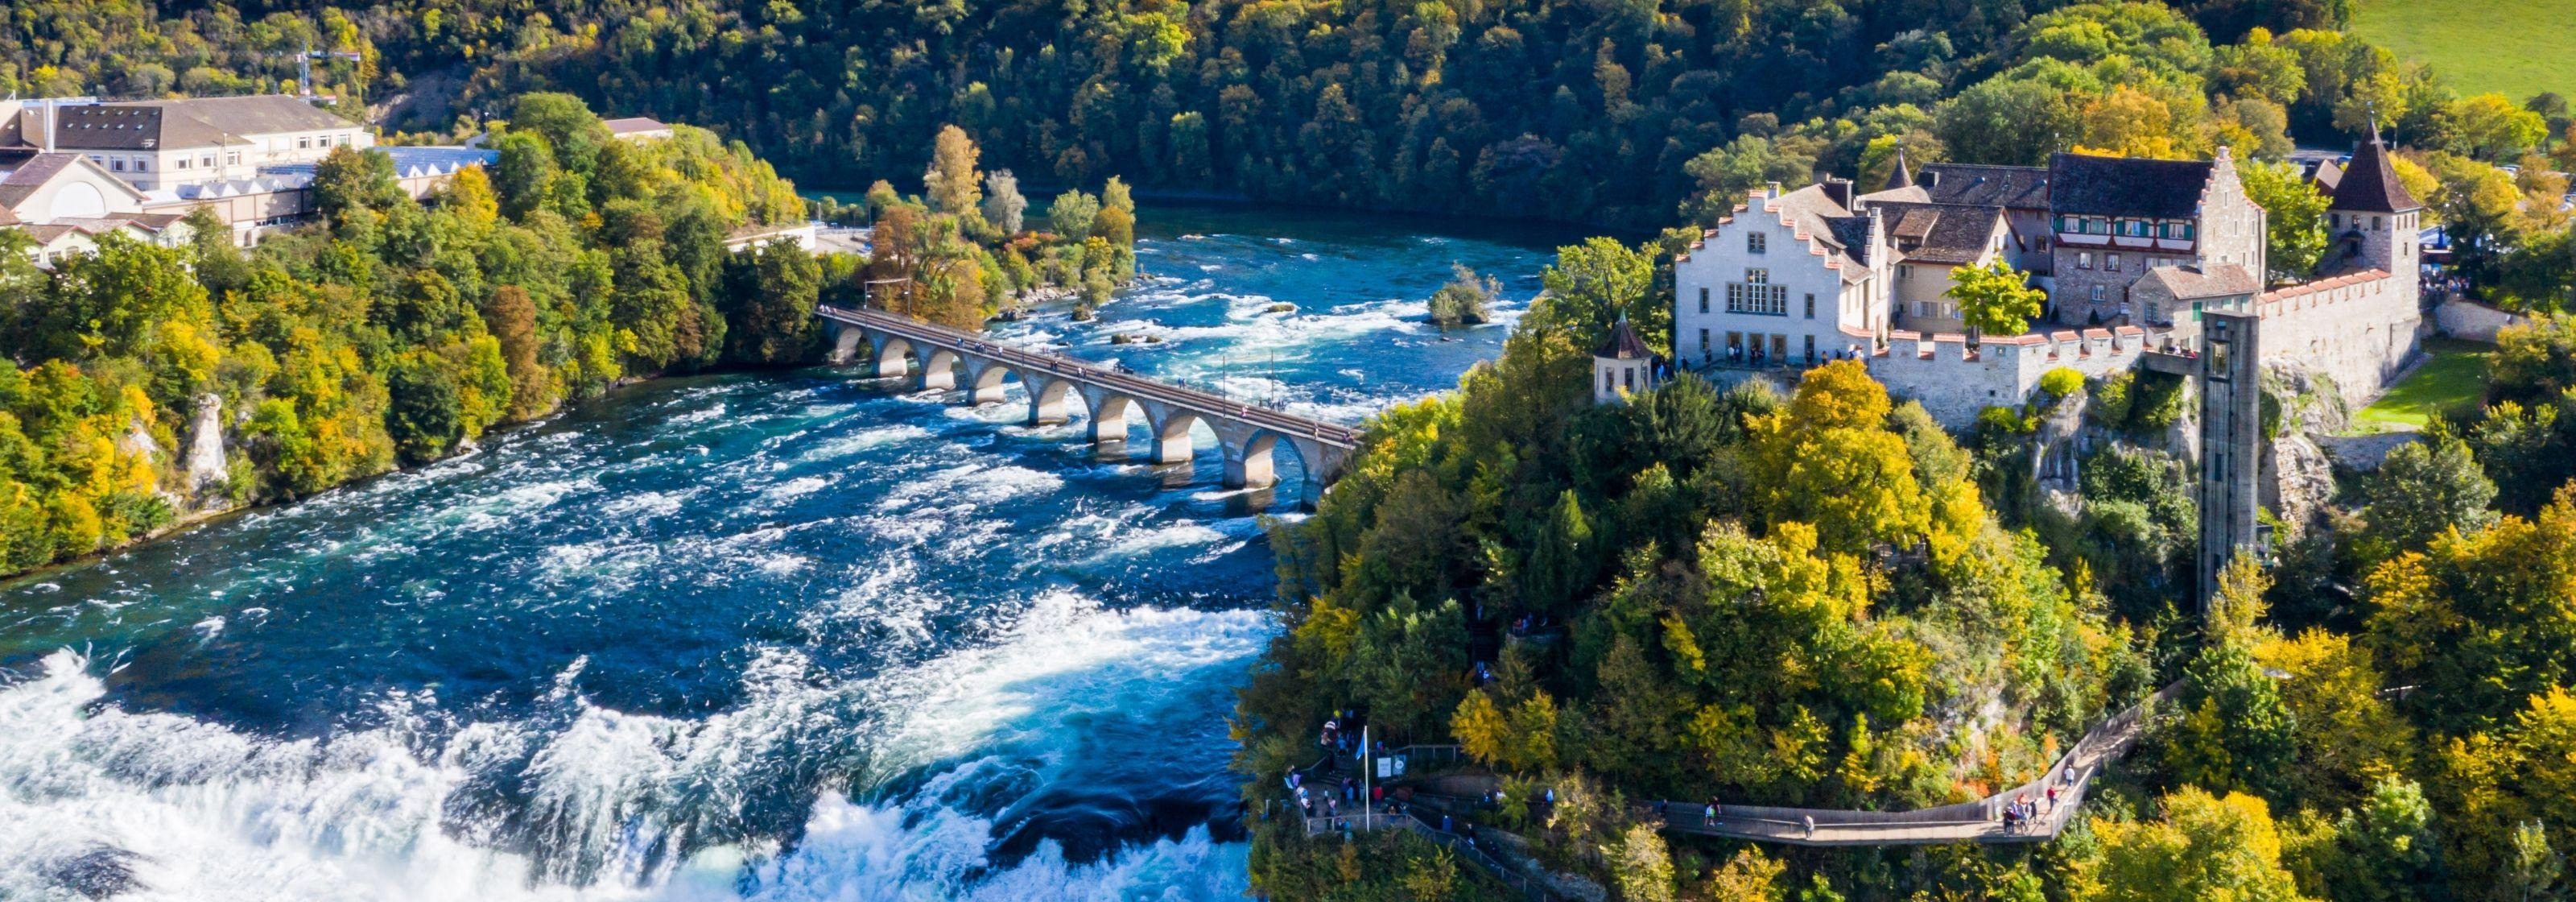 Things to do in Rhine River